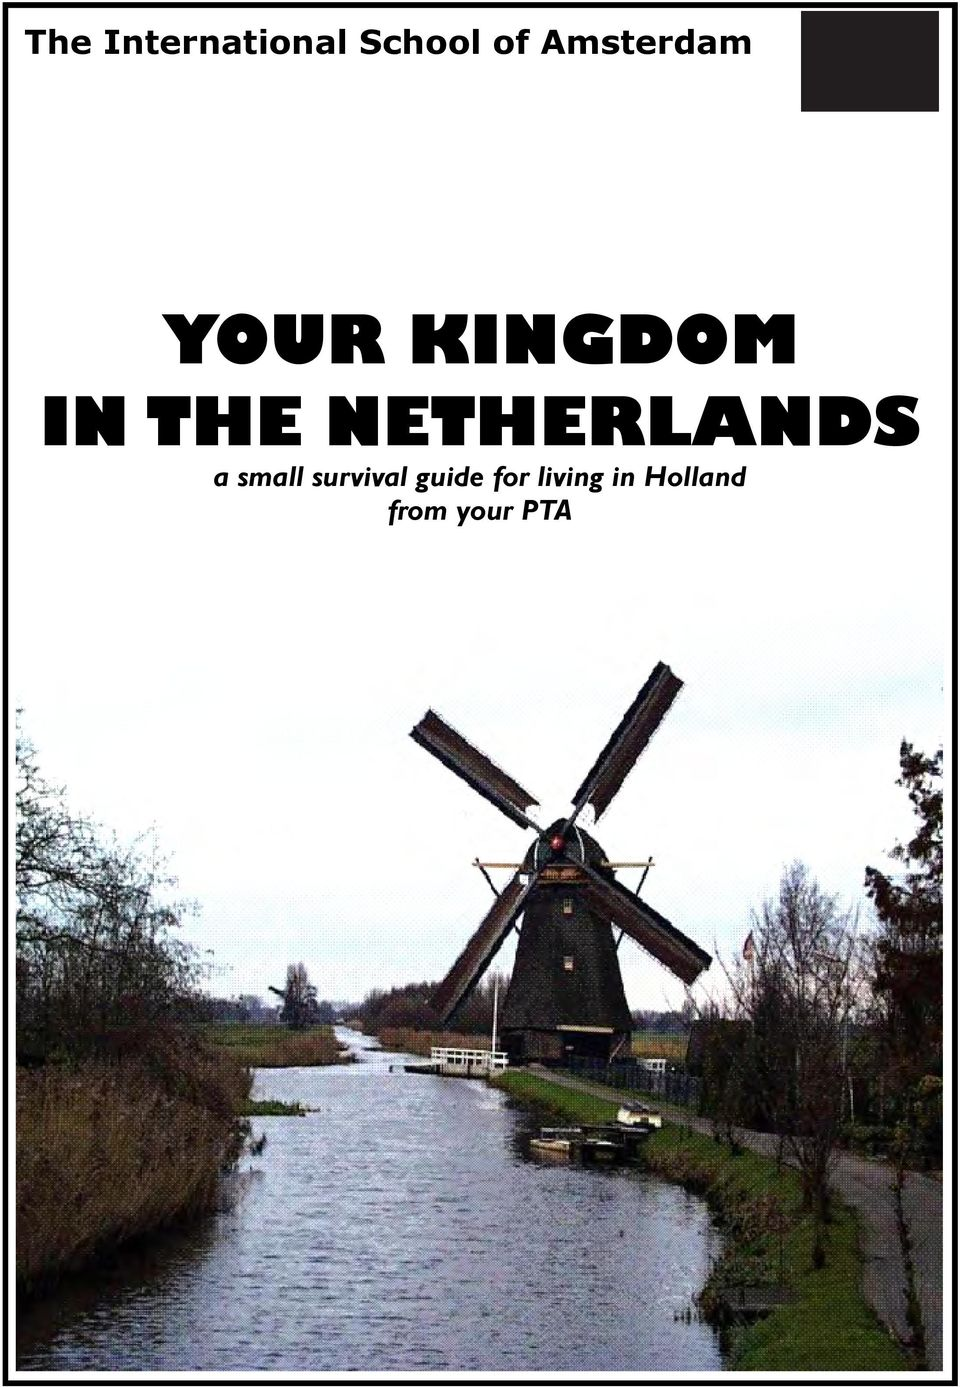 NETHERLANDS a small survival